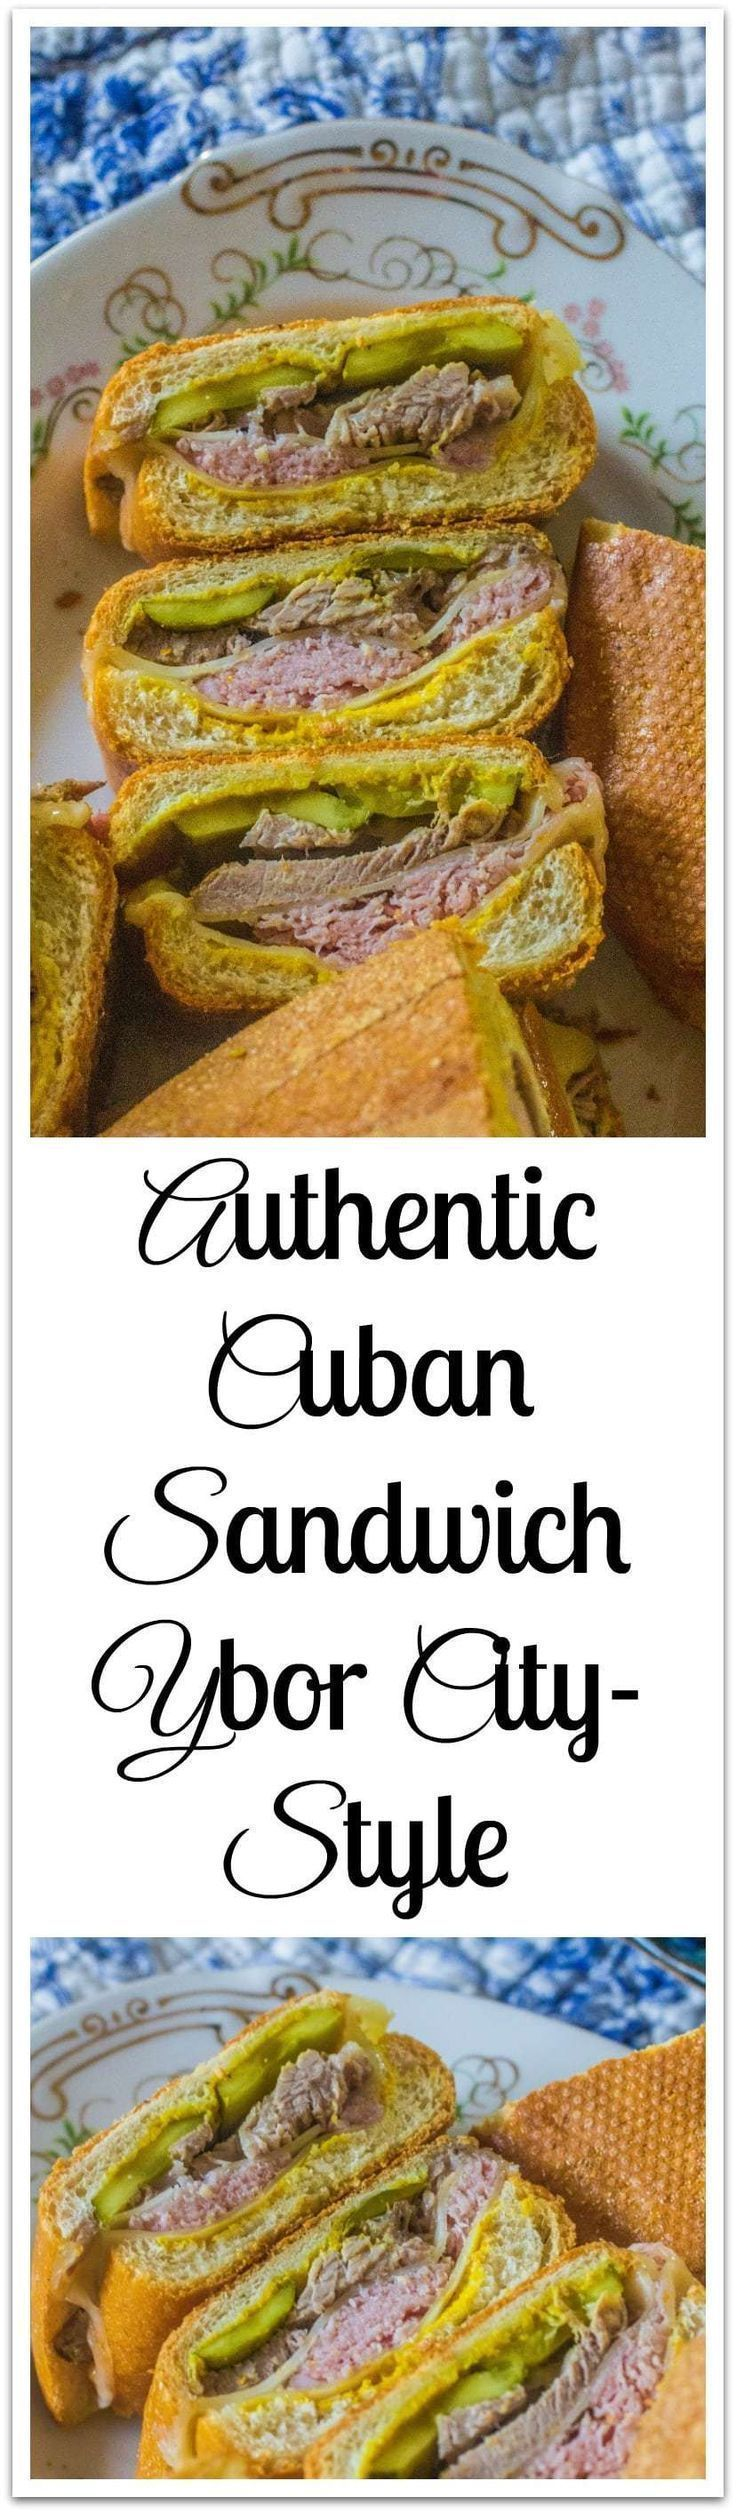 Authentic Cuban Sandwich Ybor City-style. Cuban bread, mustard, dill pickles, ham, pork and Swiss cheese create this iconic sandwich.